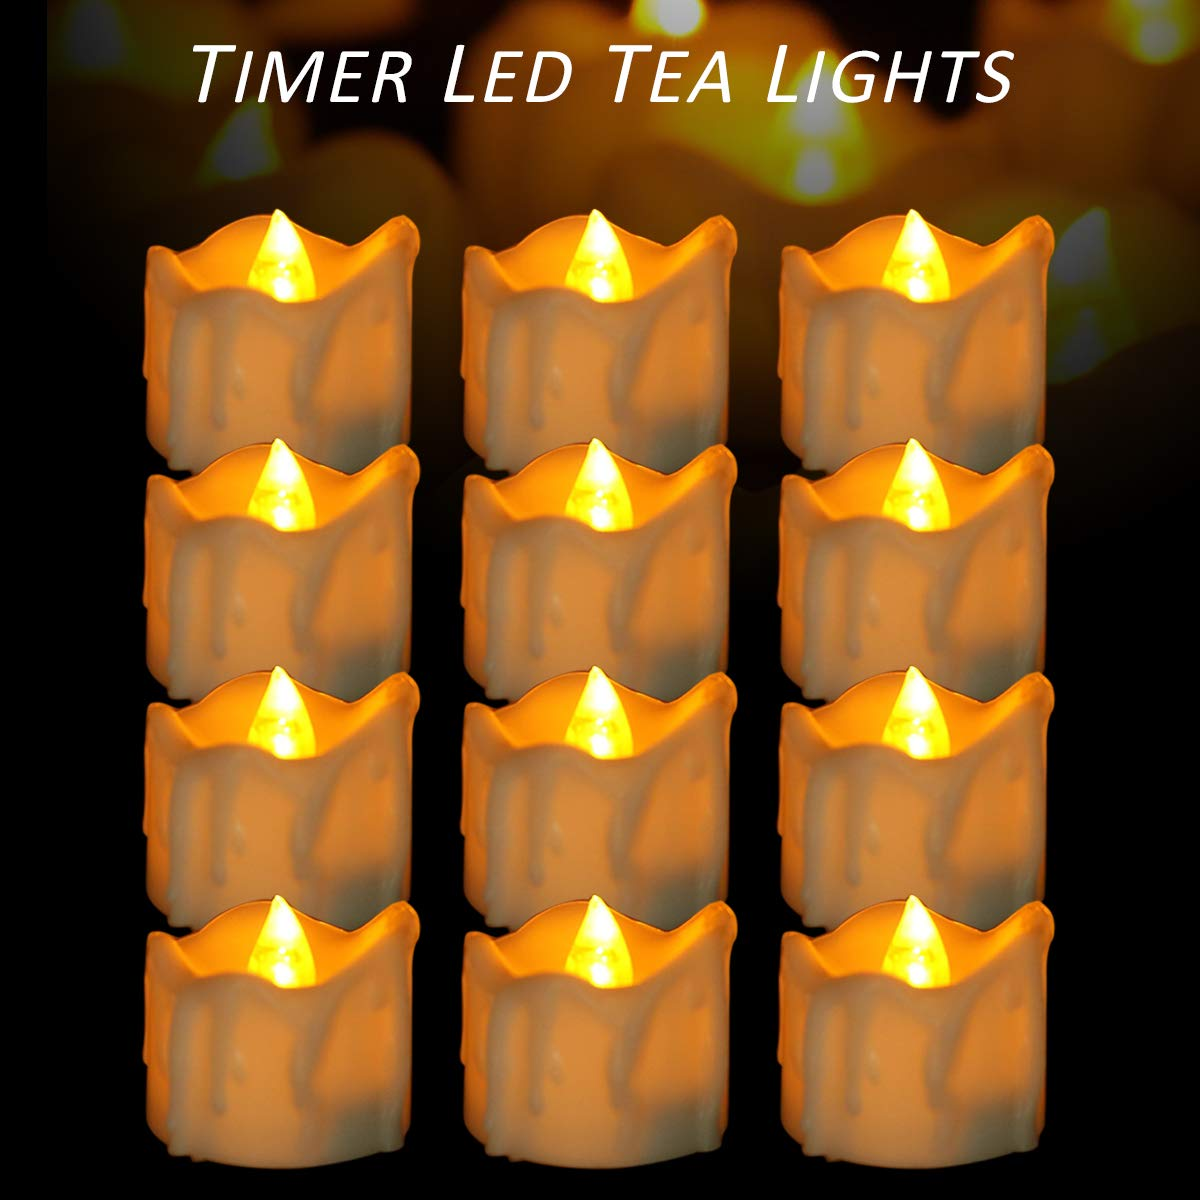 Micandle 12 Pack Battery Timer Tea Lights,6 Hours on and 18 Hours Off in 24 Hours Cycle Automatically,| LED+PP | No fire hazards or burning risks | Amber Timing Candles for Wedding Party Church Home D